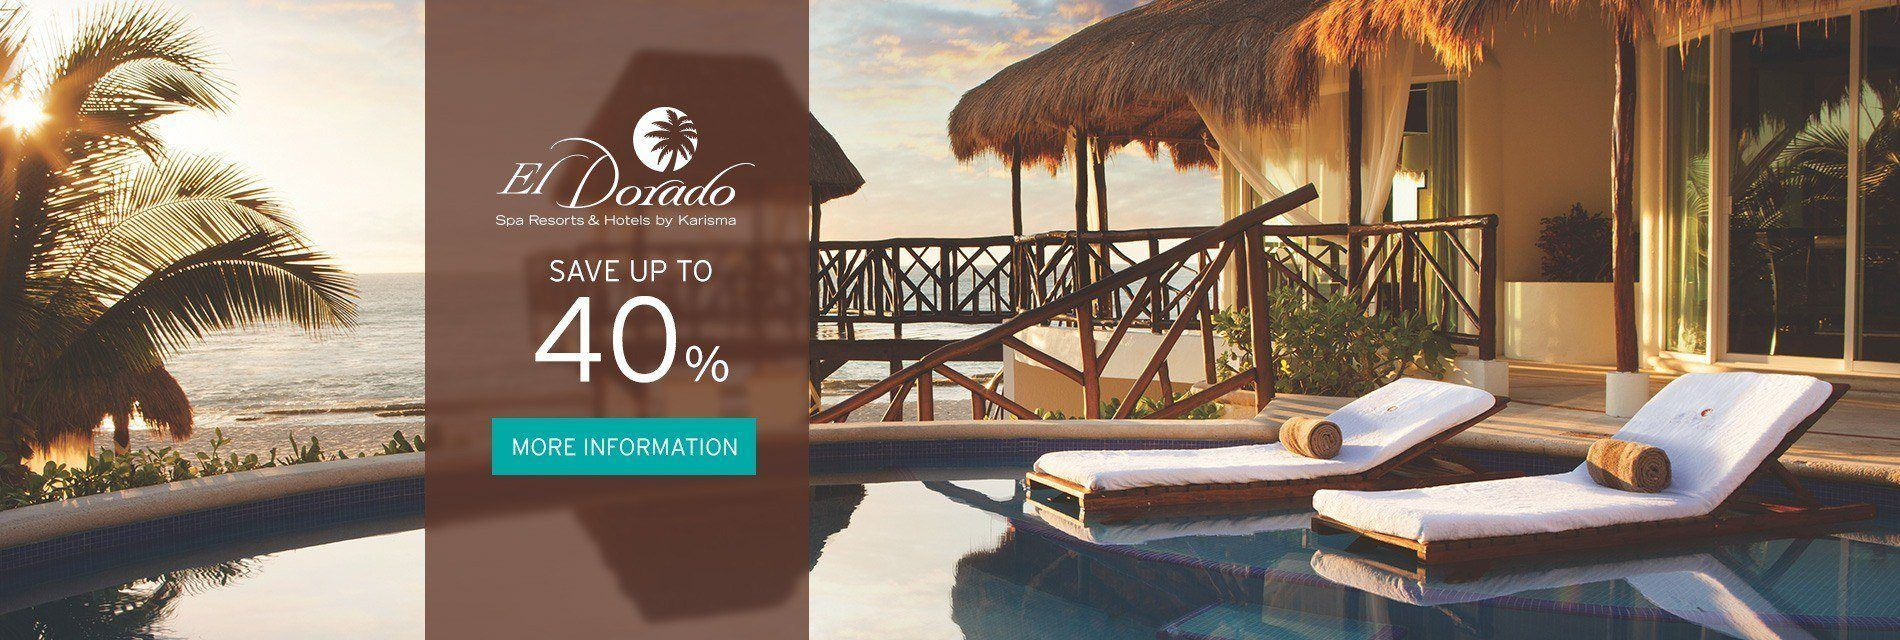 El Dorado Spa Resorts